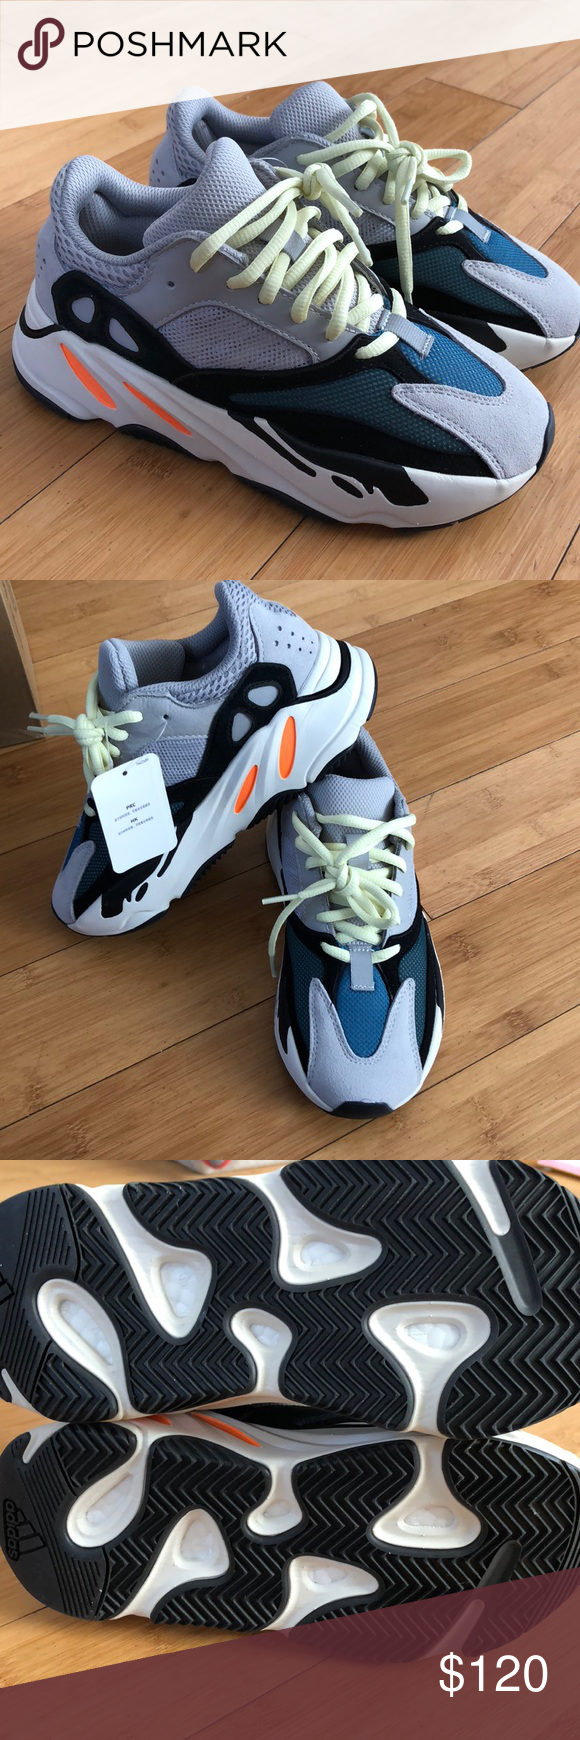 362d7c2b7fa47 Yeezy boost 700 size 4 1 2 men s. Women s size 5 Non authentic (fake) Yeezy  boost 700 wave runners in size 4 1 2 men s. Women s size 5 1 2. Never worn.